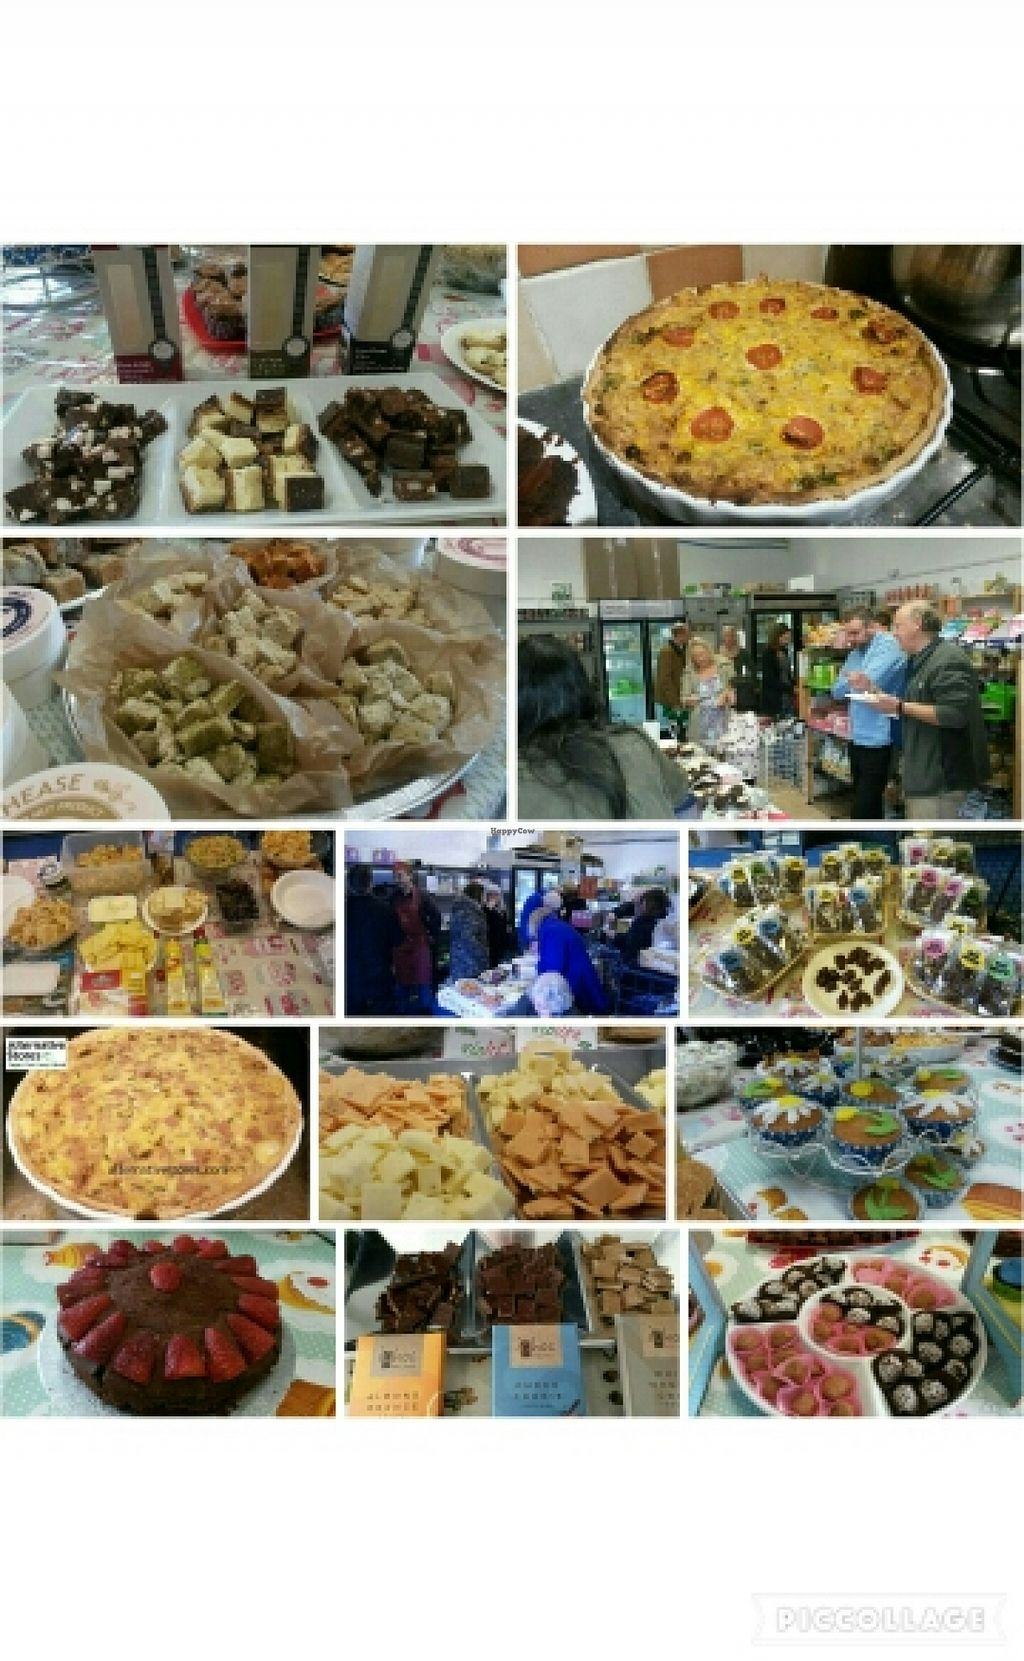 """Photo of Alternative Stores  by <a href=""""/members/profile/Melanie%20vaa"""">Melanie vaa</a> <br/>Food Tasting  <br/> February 5, 2016  - <a href='/contact/abuse/image/15169/135128'>Report</a>"""